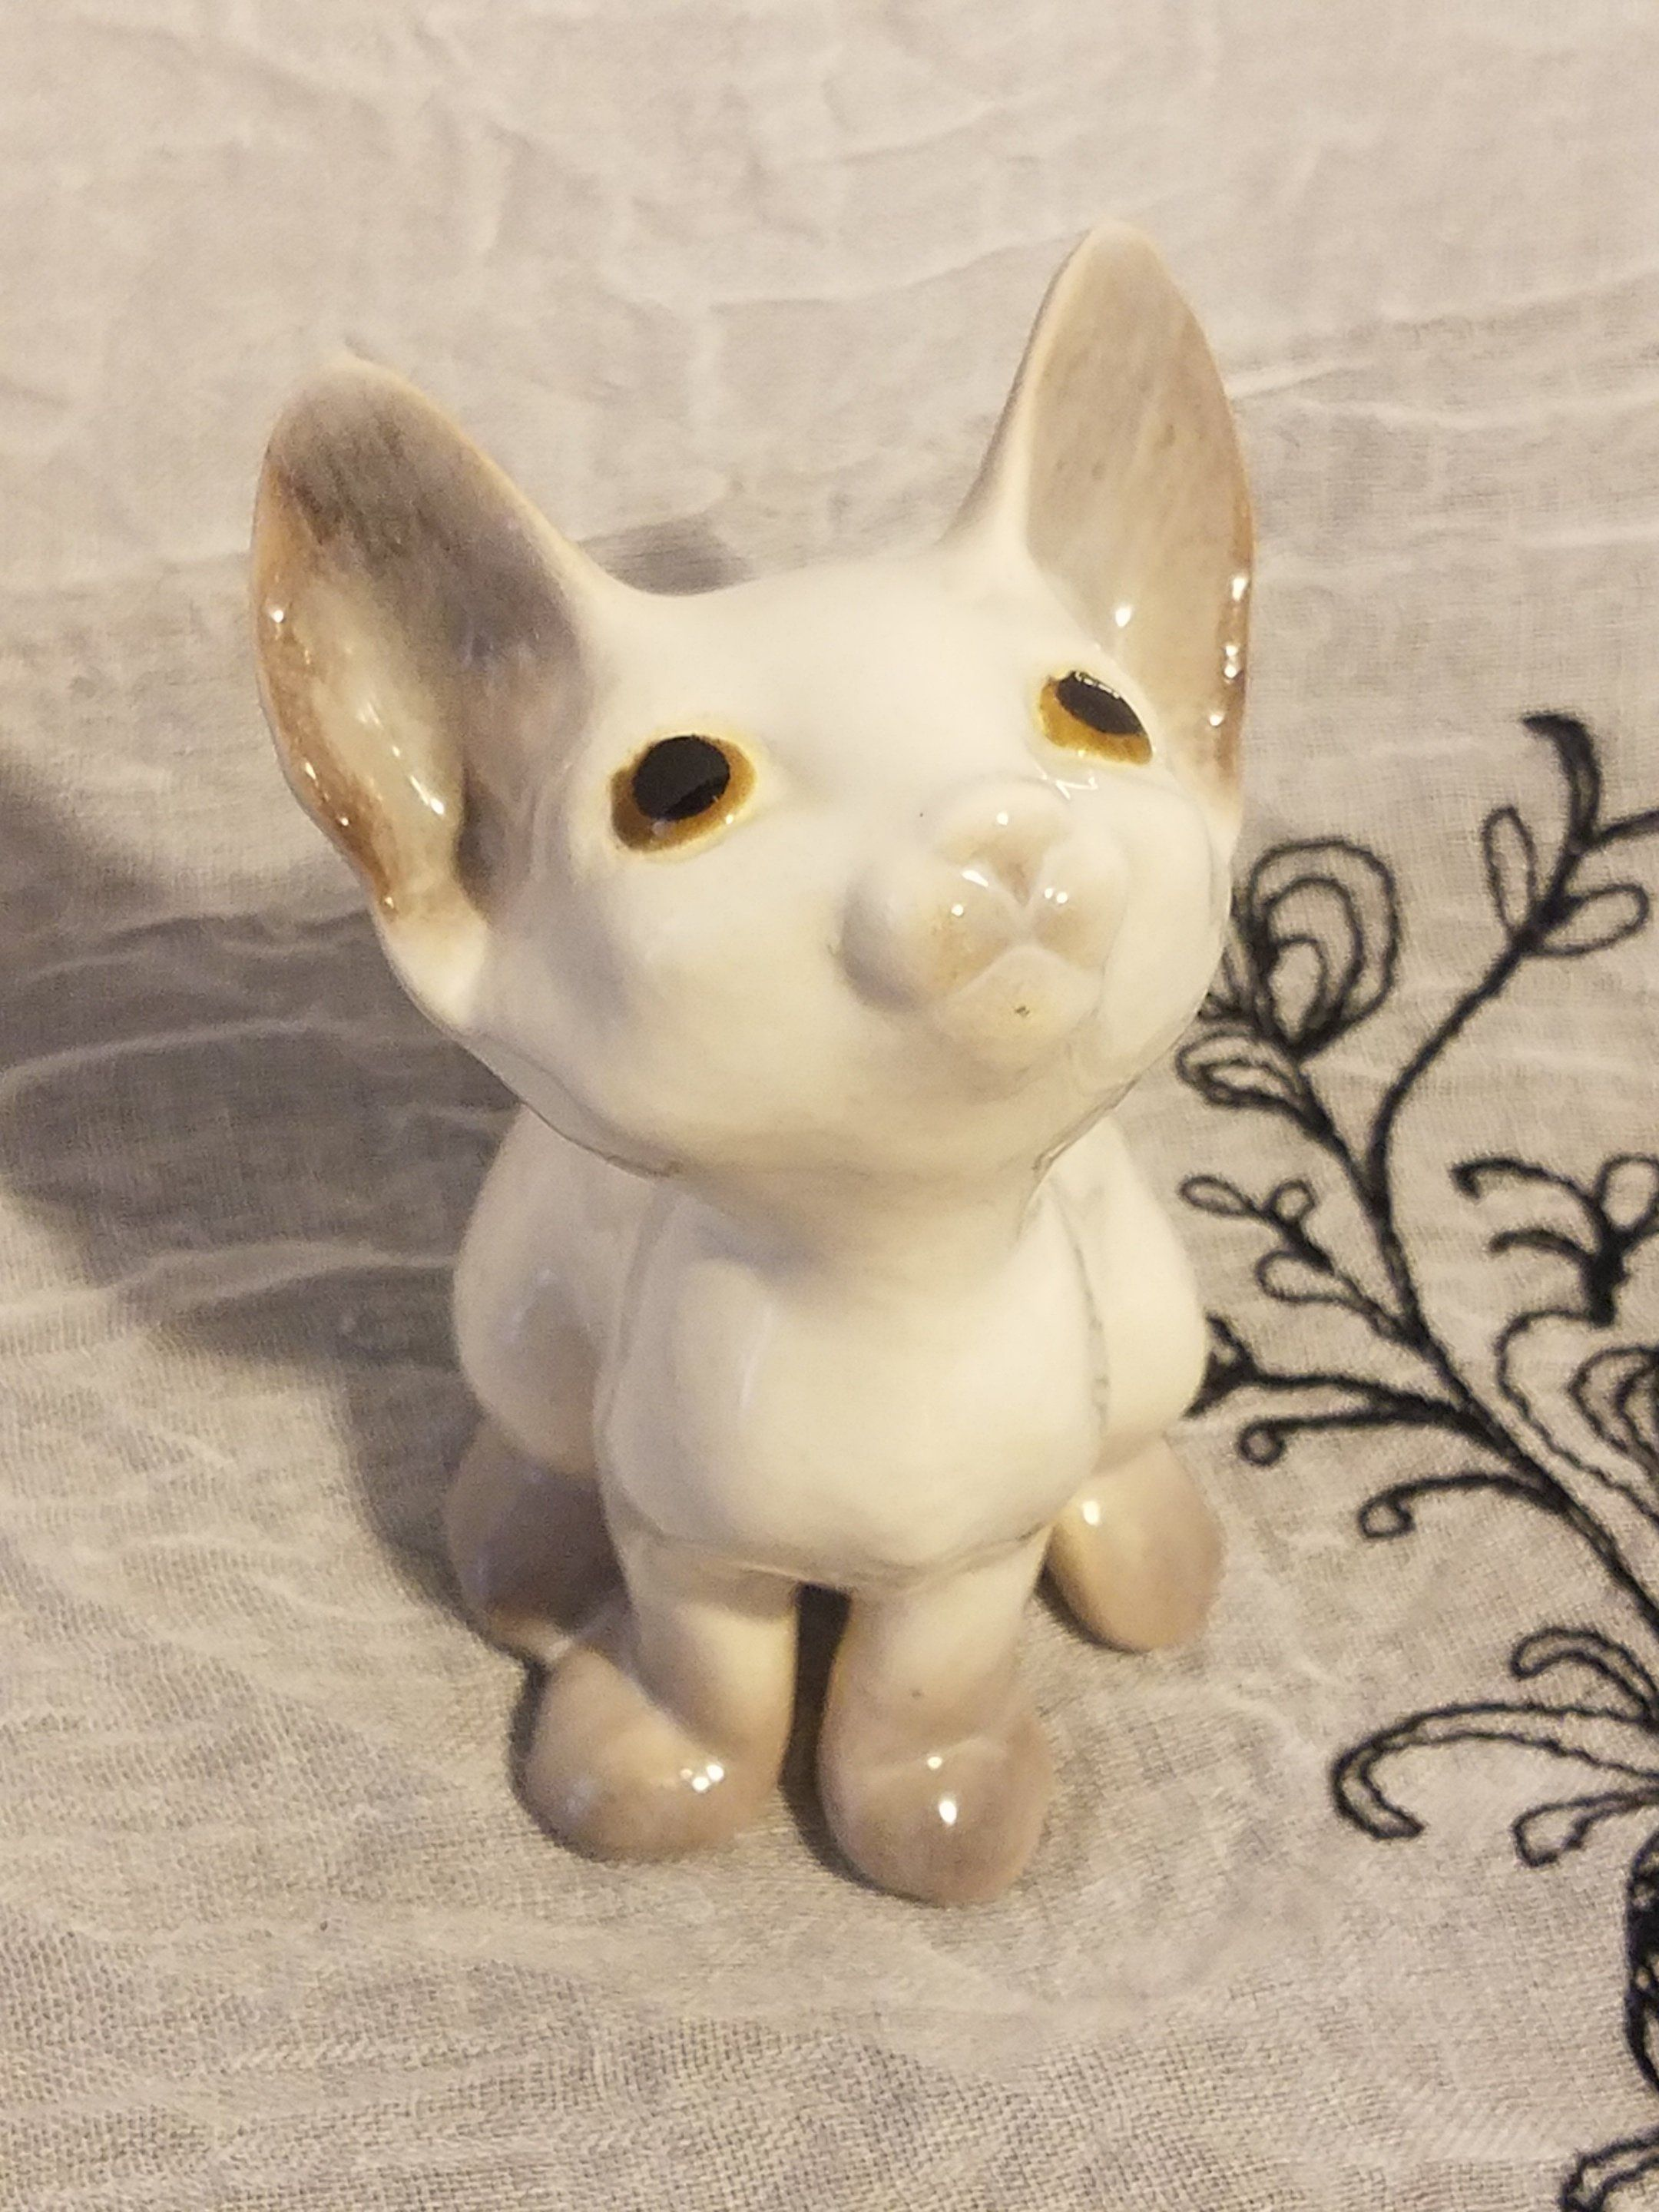 Vintage Porcelain Beyond Adorable White Siamese Kitten Cat Etsy Cats And Kittens Siamese Kittens Vintage Porcelain